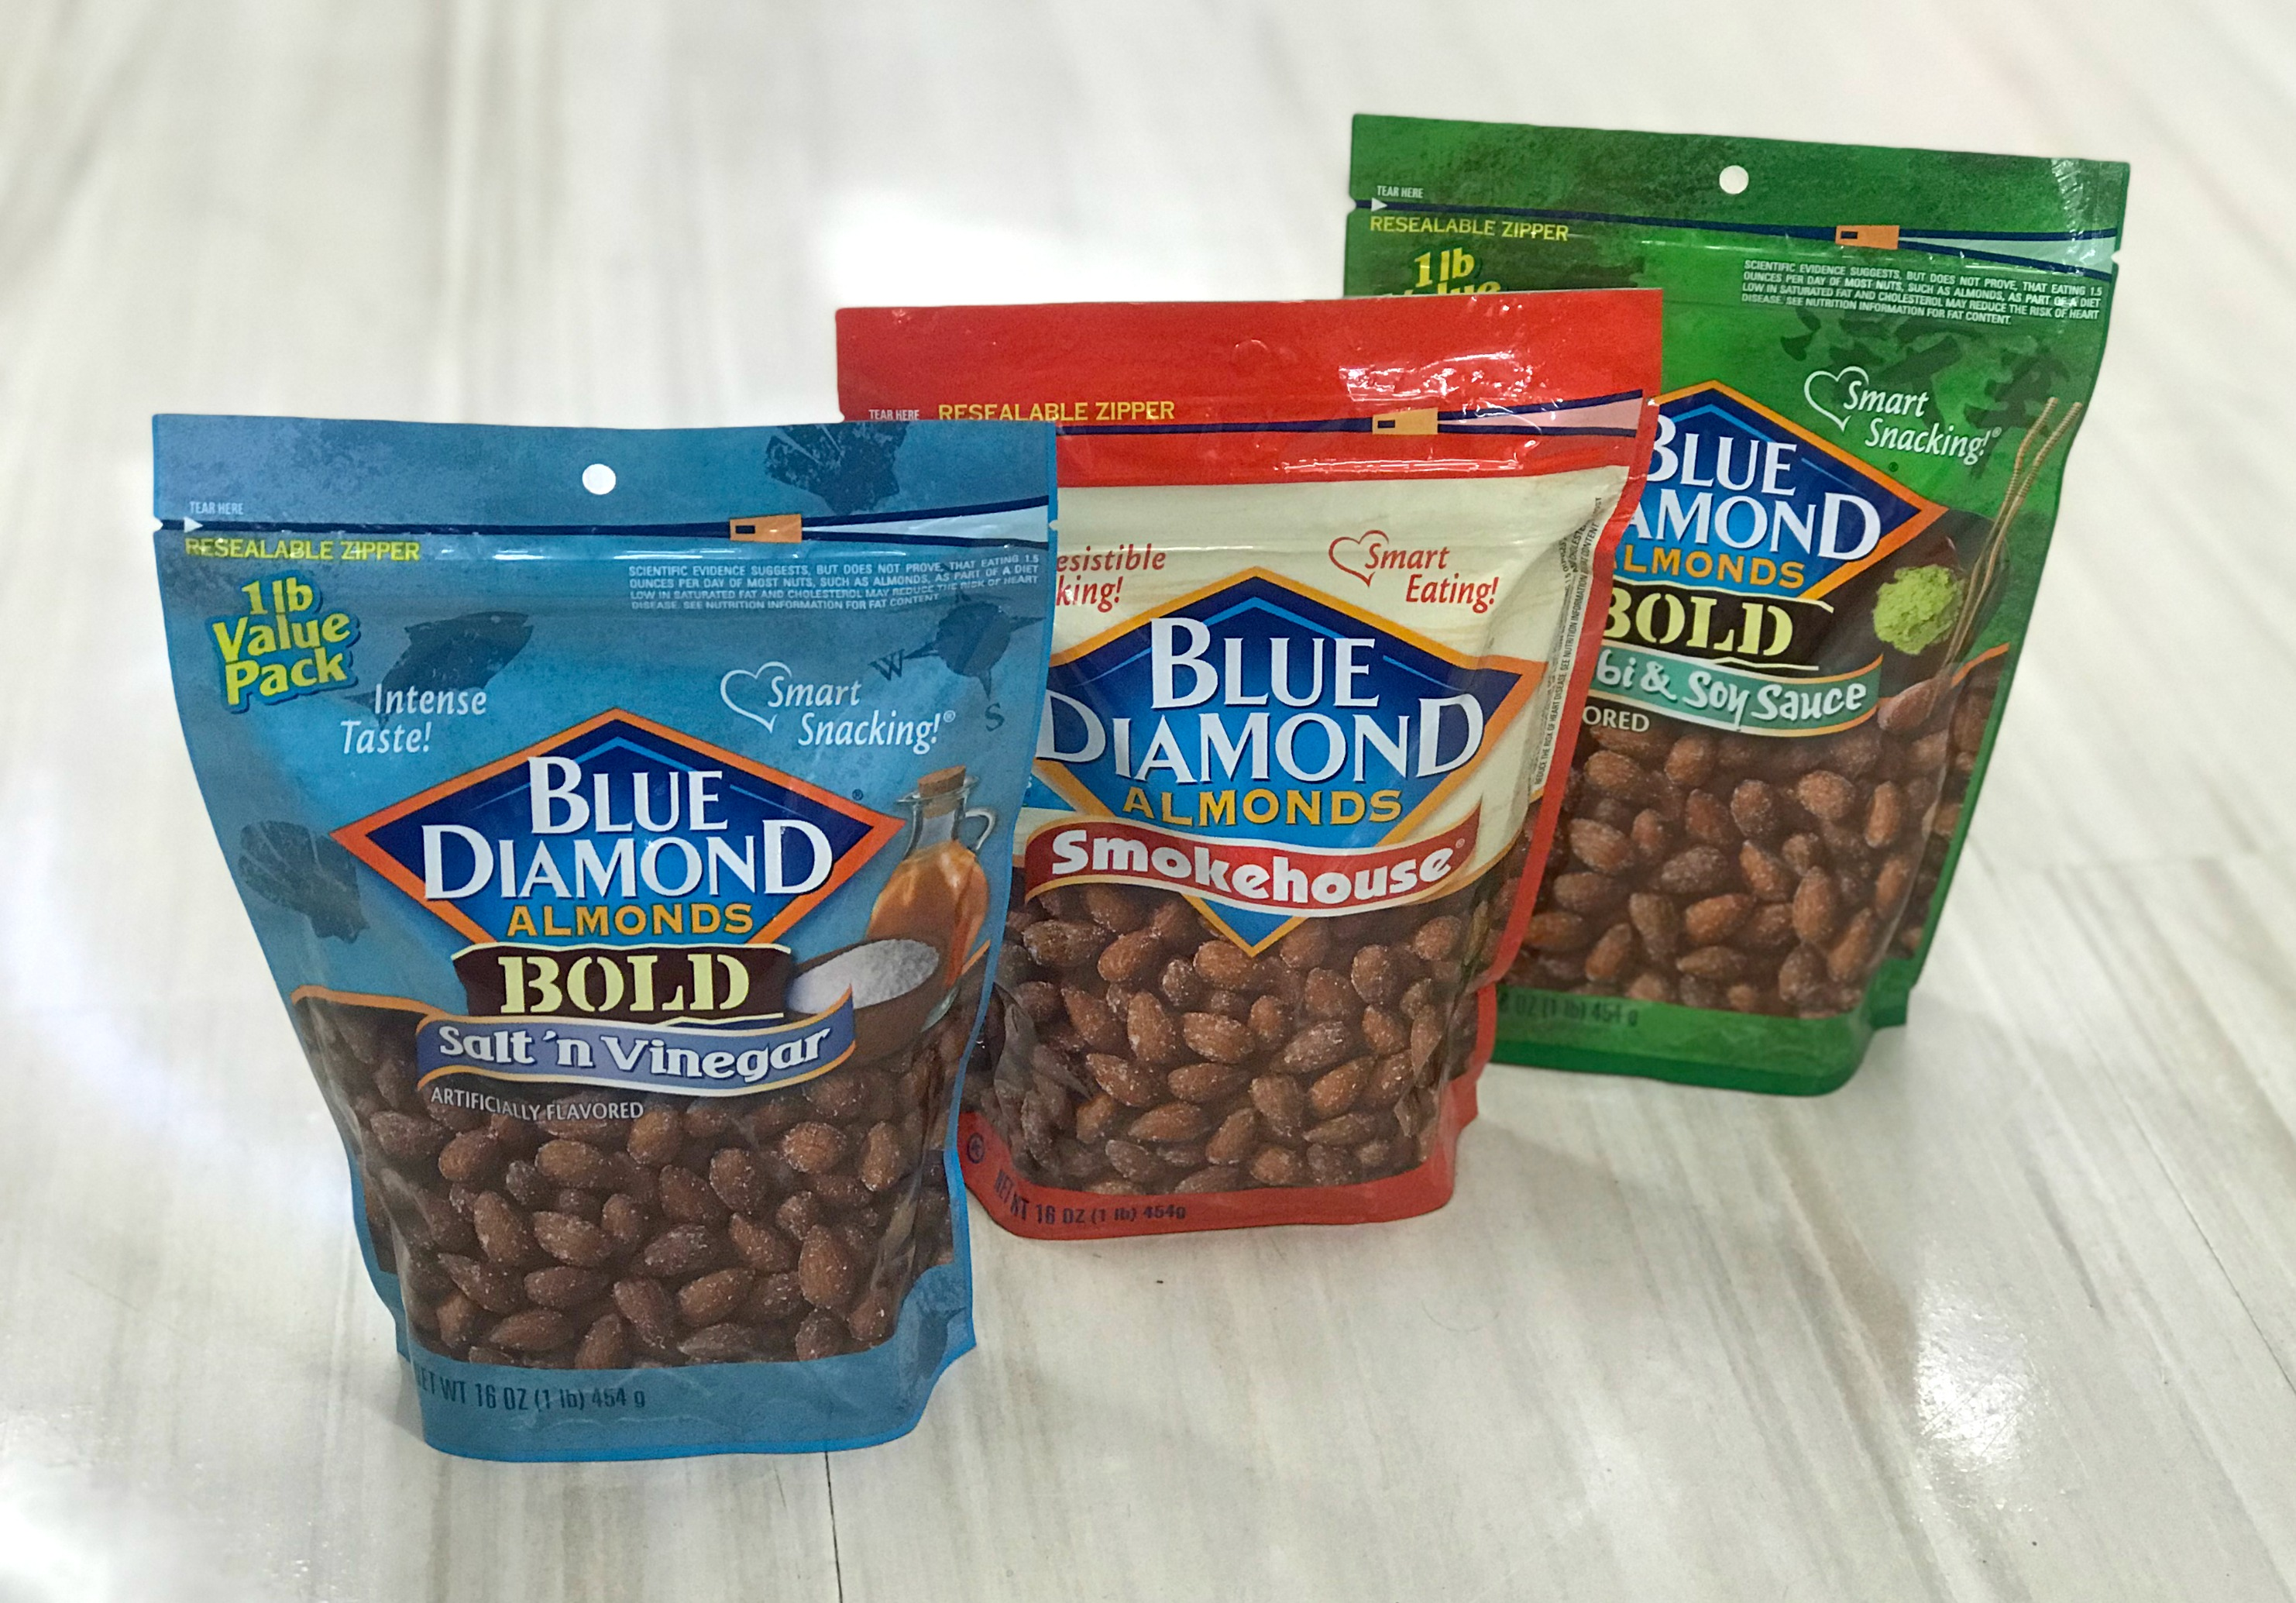 bags of Rite Aid Blue Diamond Almonds in assorted flavors